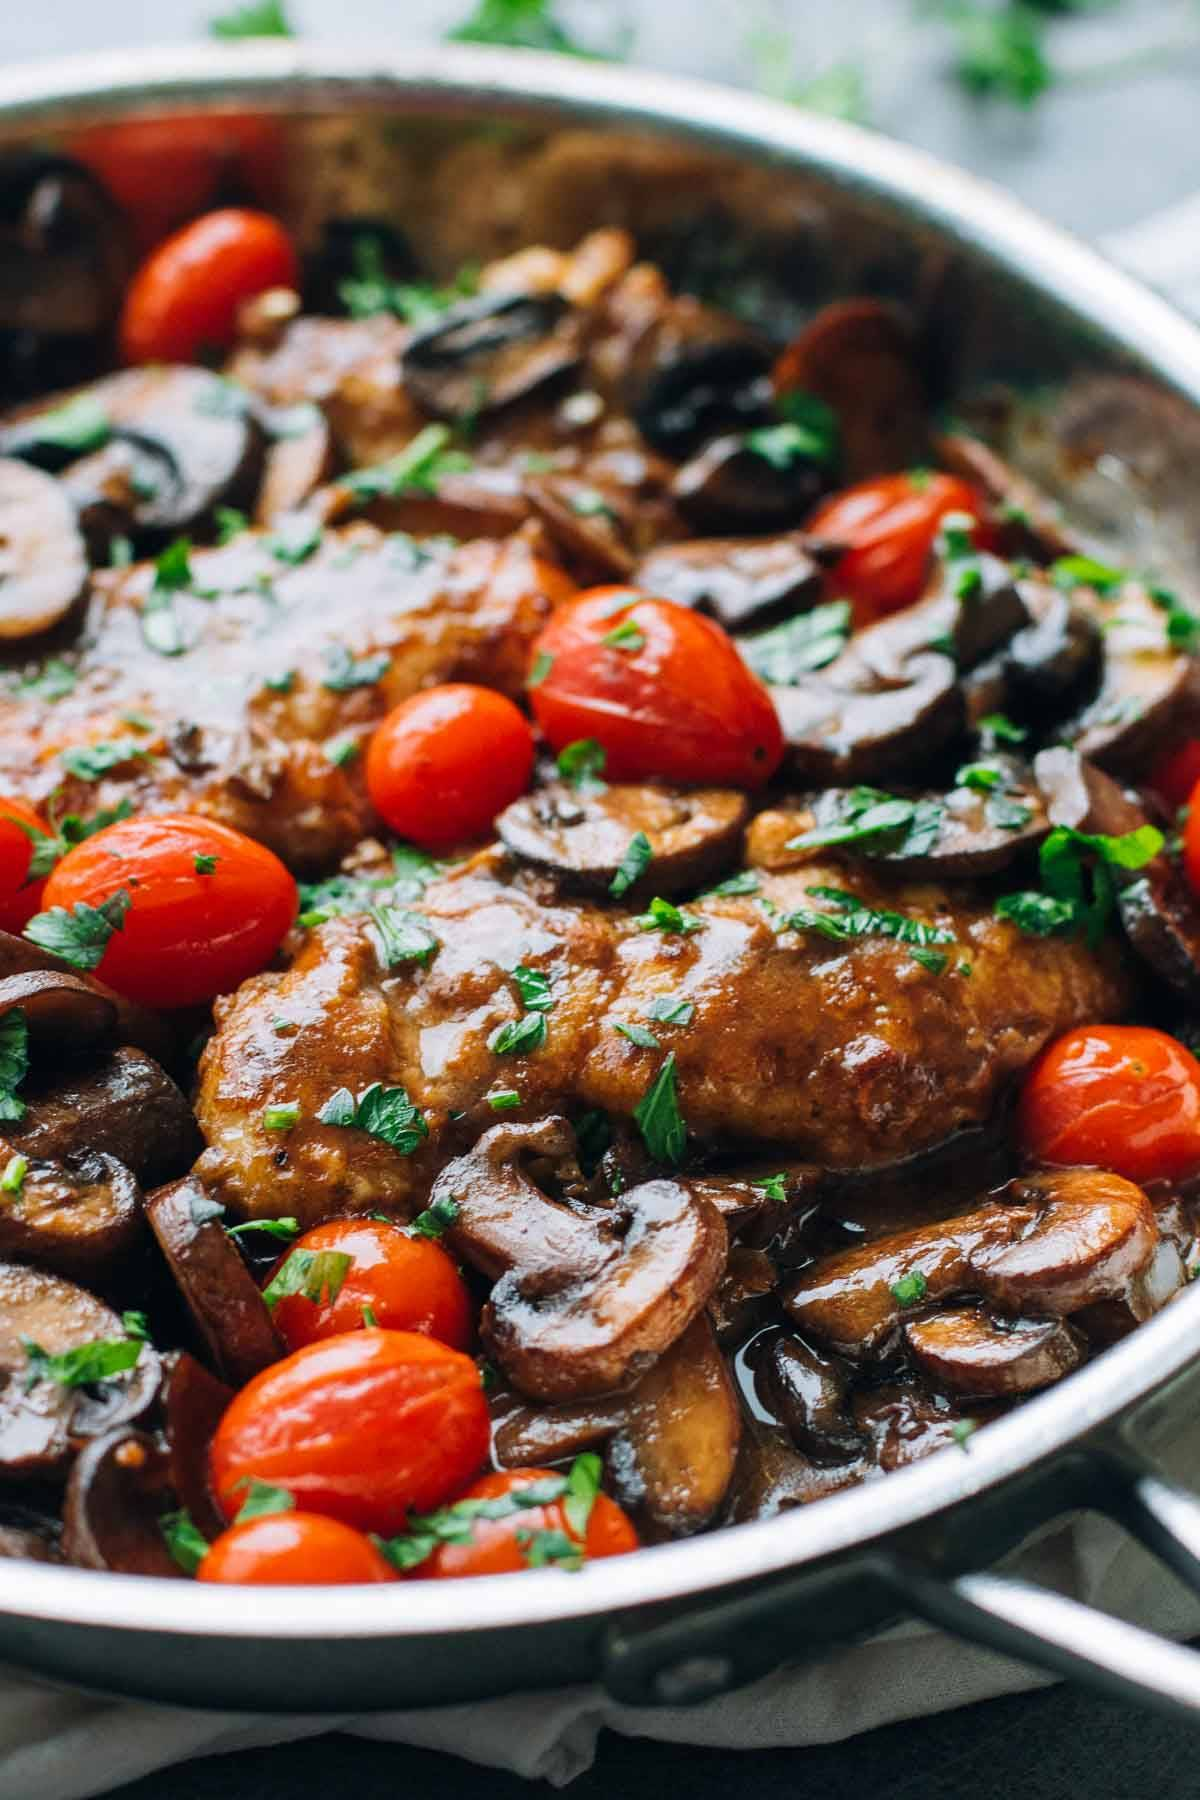 A simple Chicken Marsala recipe featuring fresh tomatoes, pan-fried chicken breasts, sauteed mushrooms, and a Marsala wine sauce. | pinchofyum.com